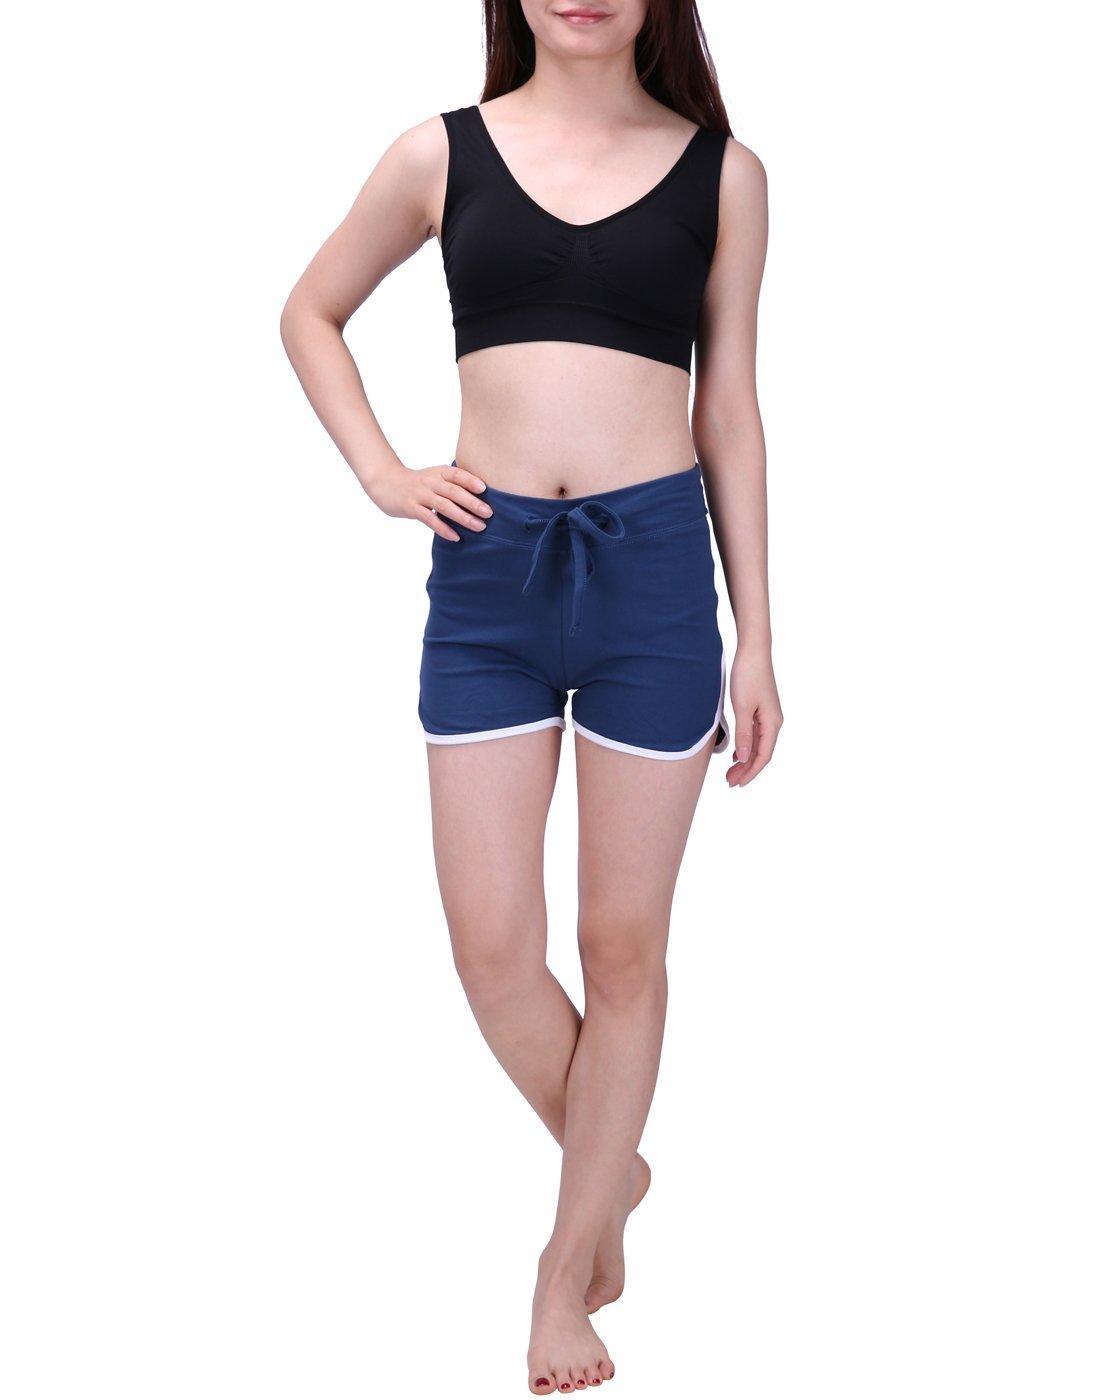 HDE Women's Retro Fashion Dolphin Running Workout Shorts (Midnight Blue, Medium) by HDE (Image #6)